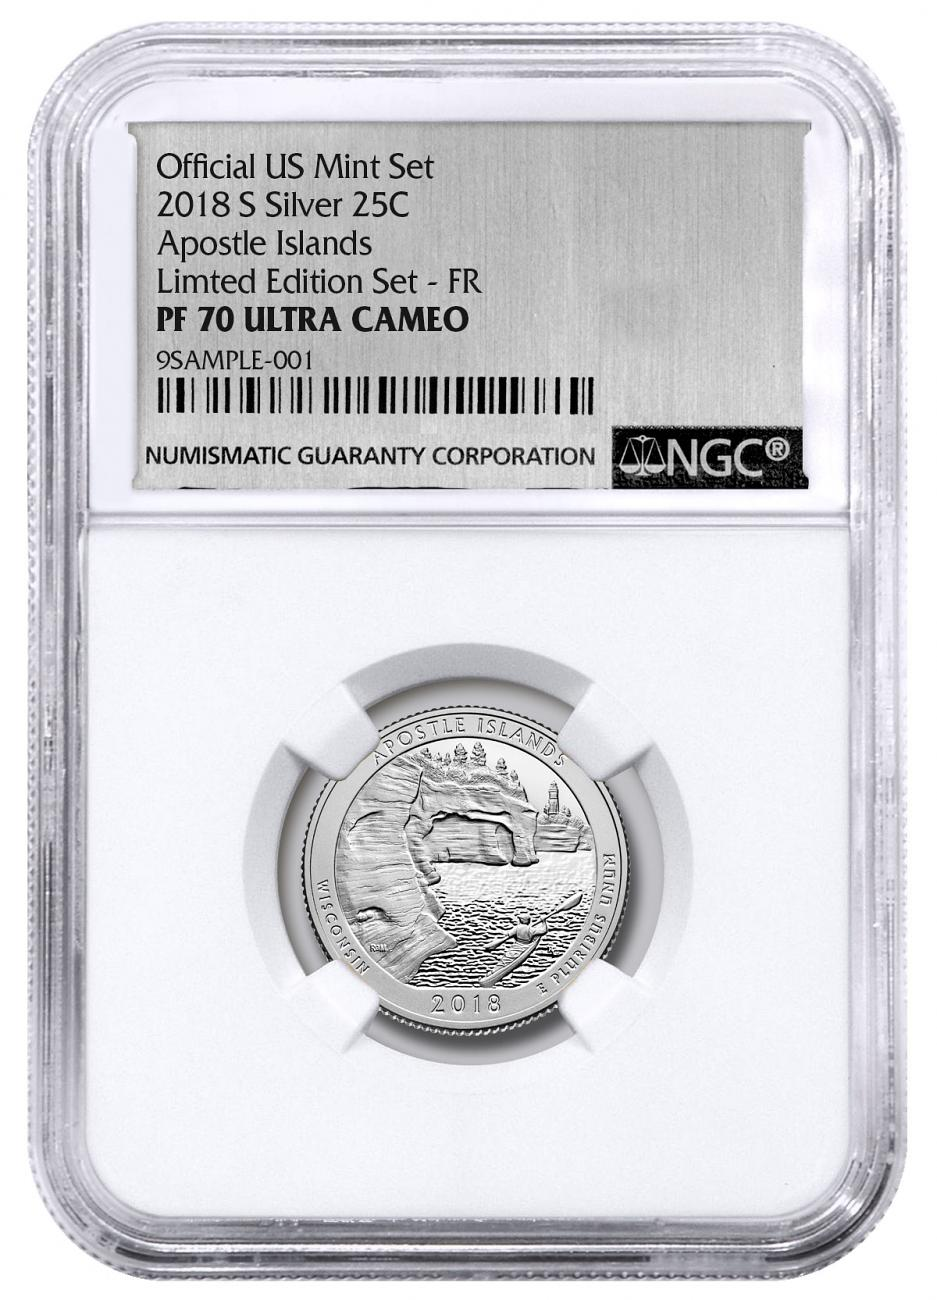 2018-S Silver Apostle Islands Proof America the Beautiful Quarter From Limited Edition Silver Proof Set NGC PF70 UC FR Silver Foil Label